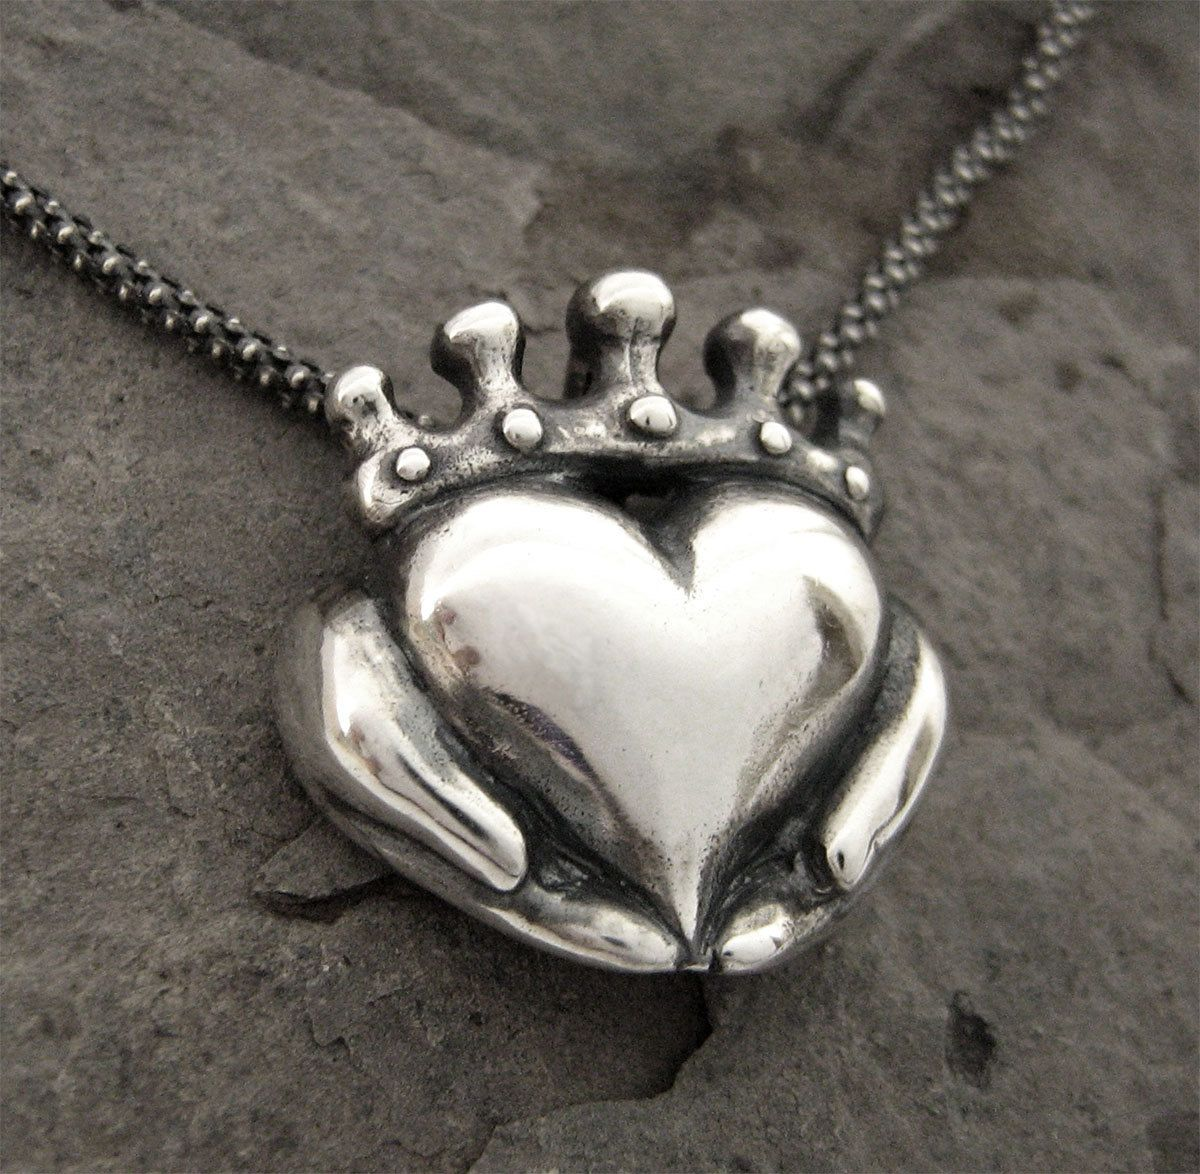 Handmade claddagh necklace ready to ship claddagh pendant handmade claddagh necklace ready to ship claddagh pendant sterling claddagh celtic jewelry irish promise pendant gift for her 12 aloadofball Choice Image